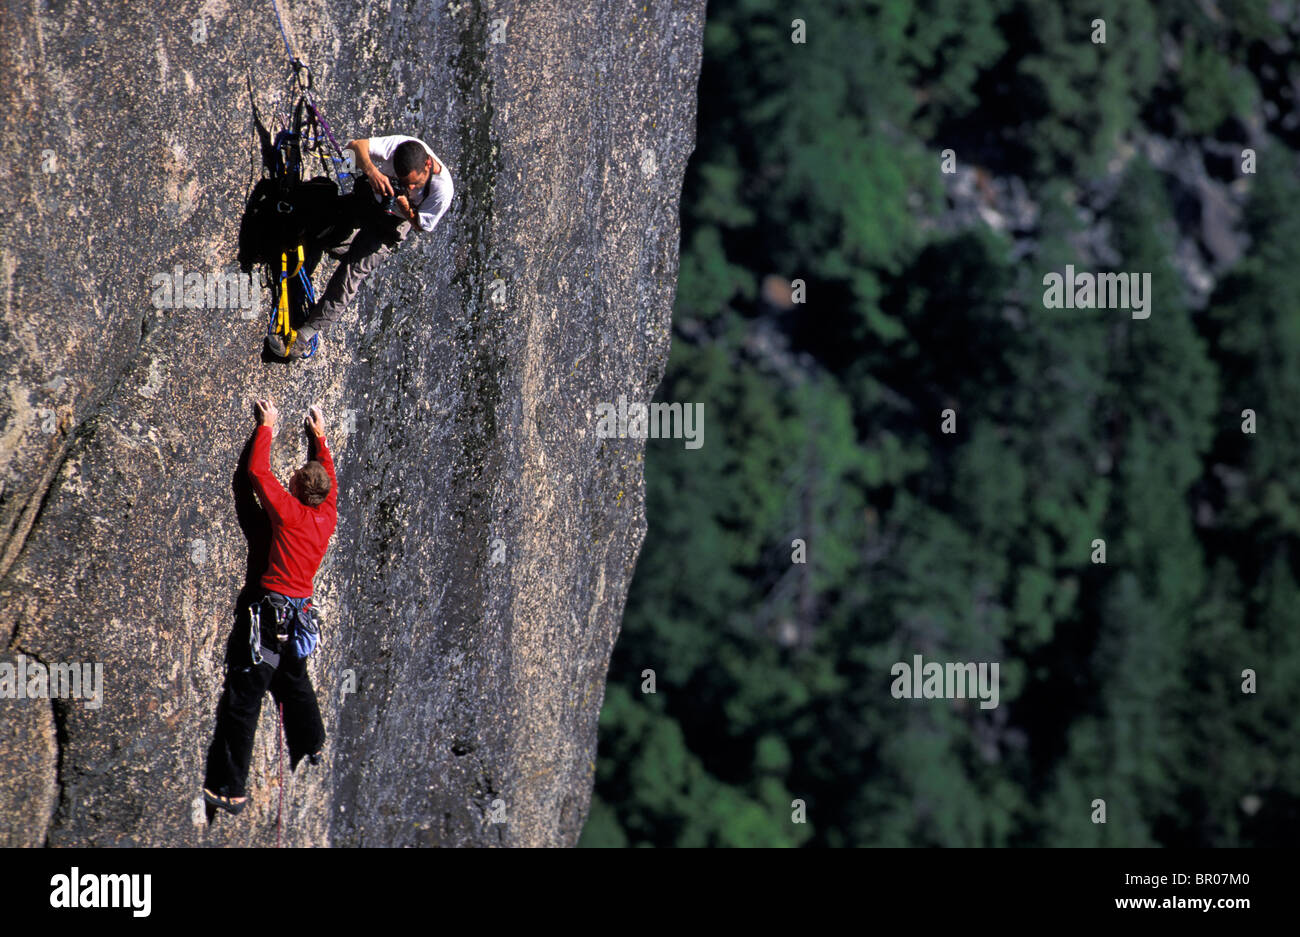 A male photographer taking pictures of a male rock climber lead climbing on a granite big wall route. - Stock Image